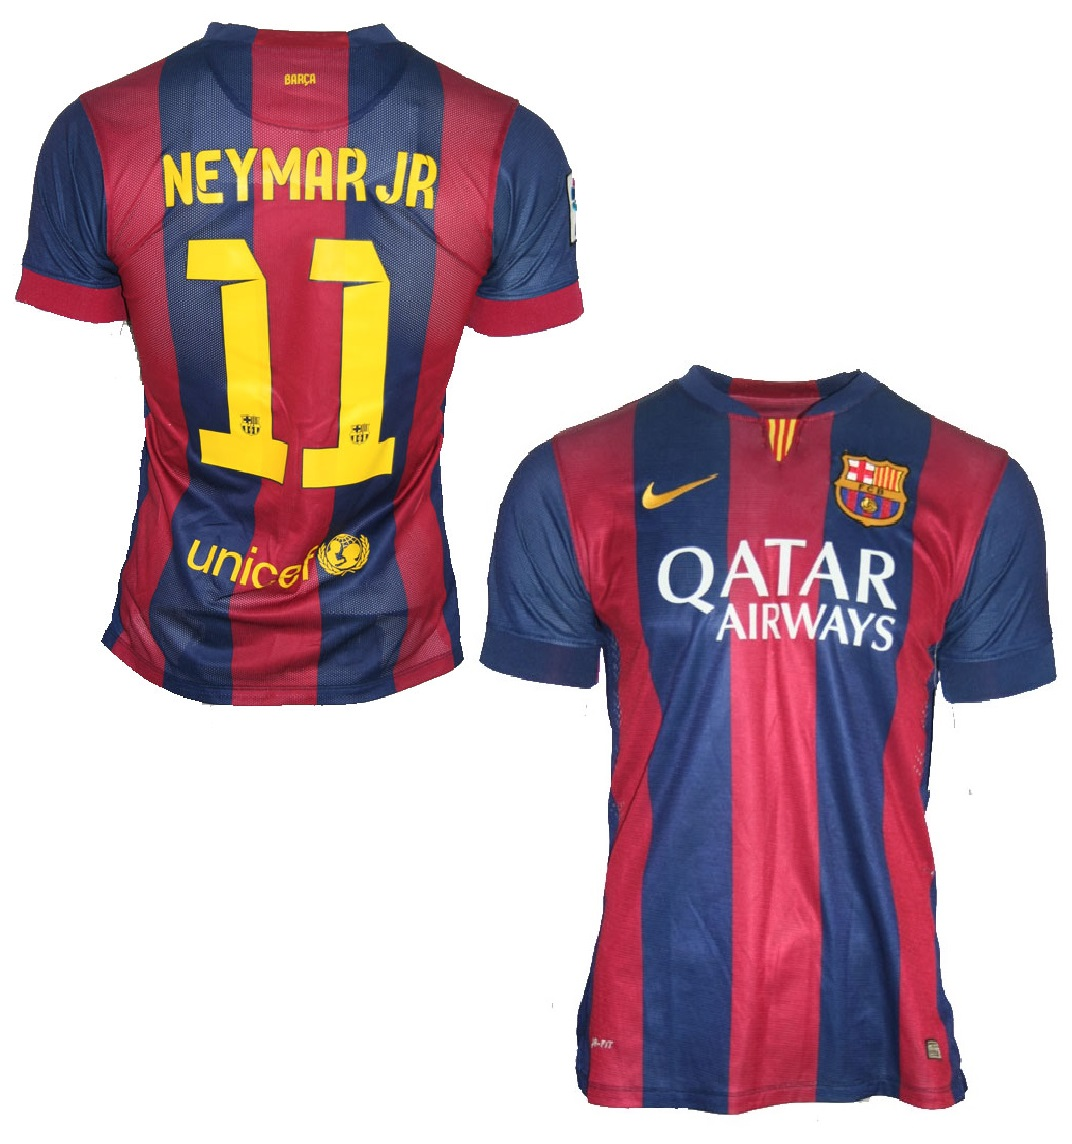 Nike Fc Barcelona Jersey 11 Neymar 2014 15 Qatar Men S S M L Xl Xxl Football Shirt Buy Order Cheap Online Shop Spieler Trikot De Retro Vintage Old Football Shirts Jersey From Super Stars